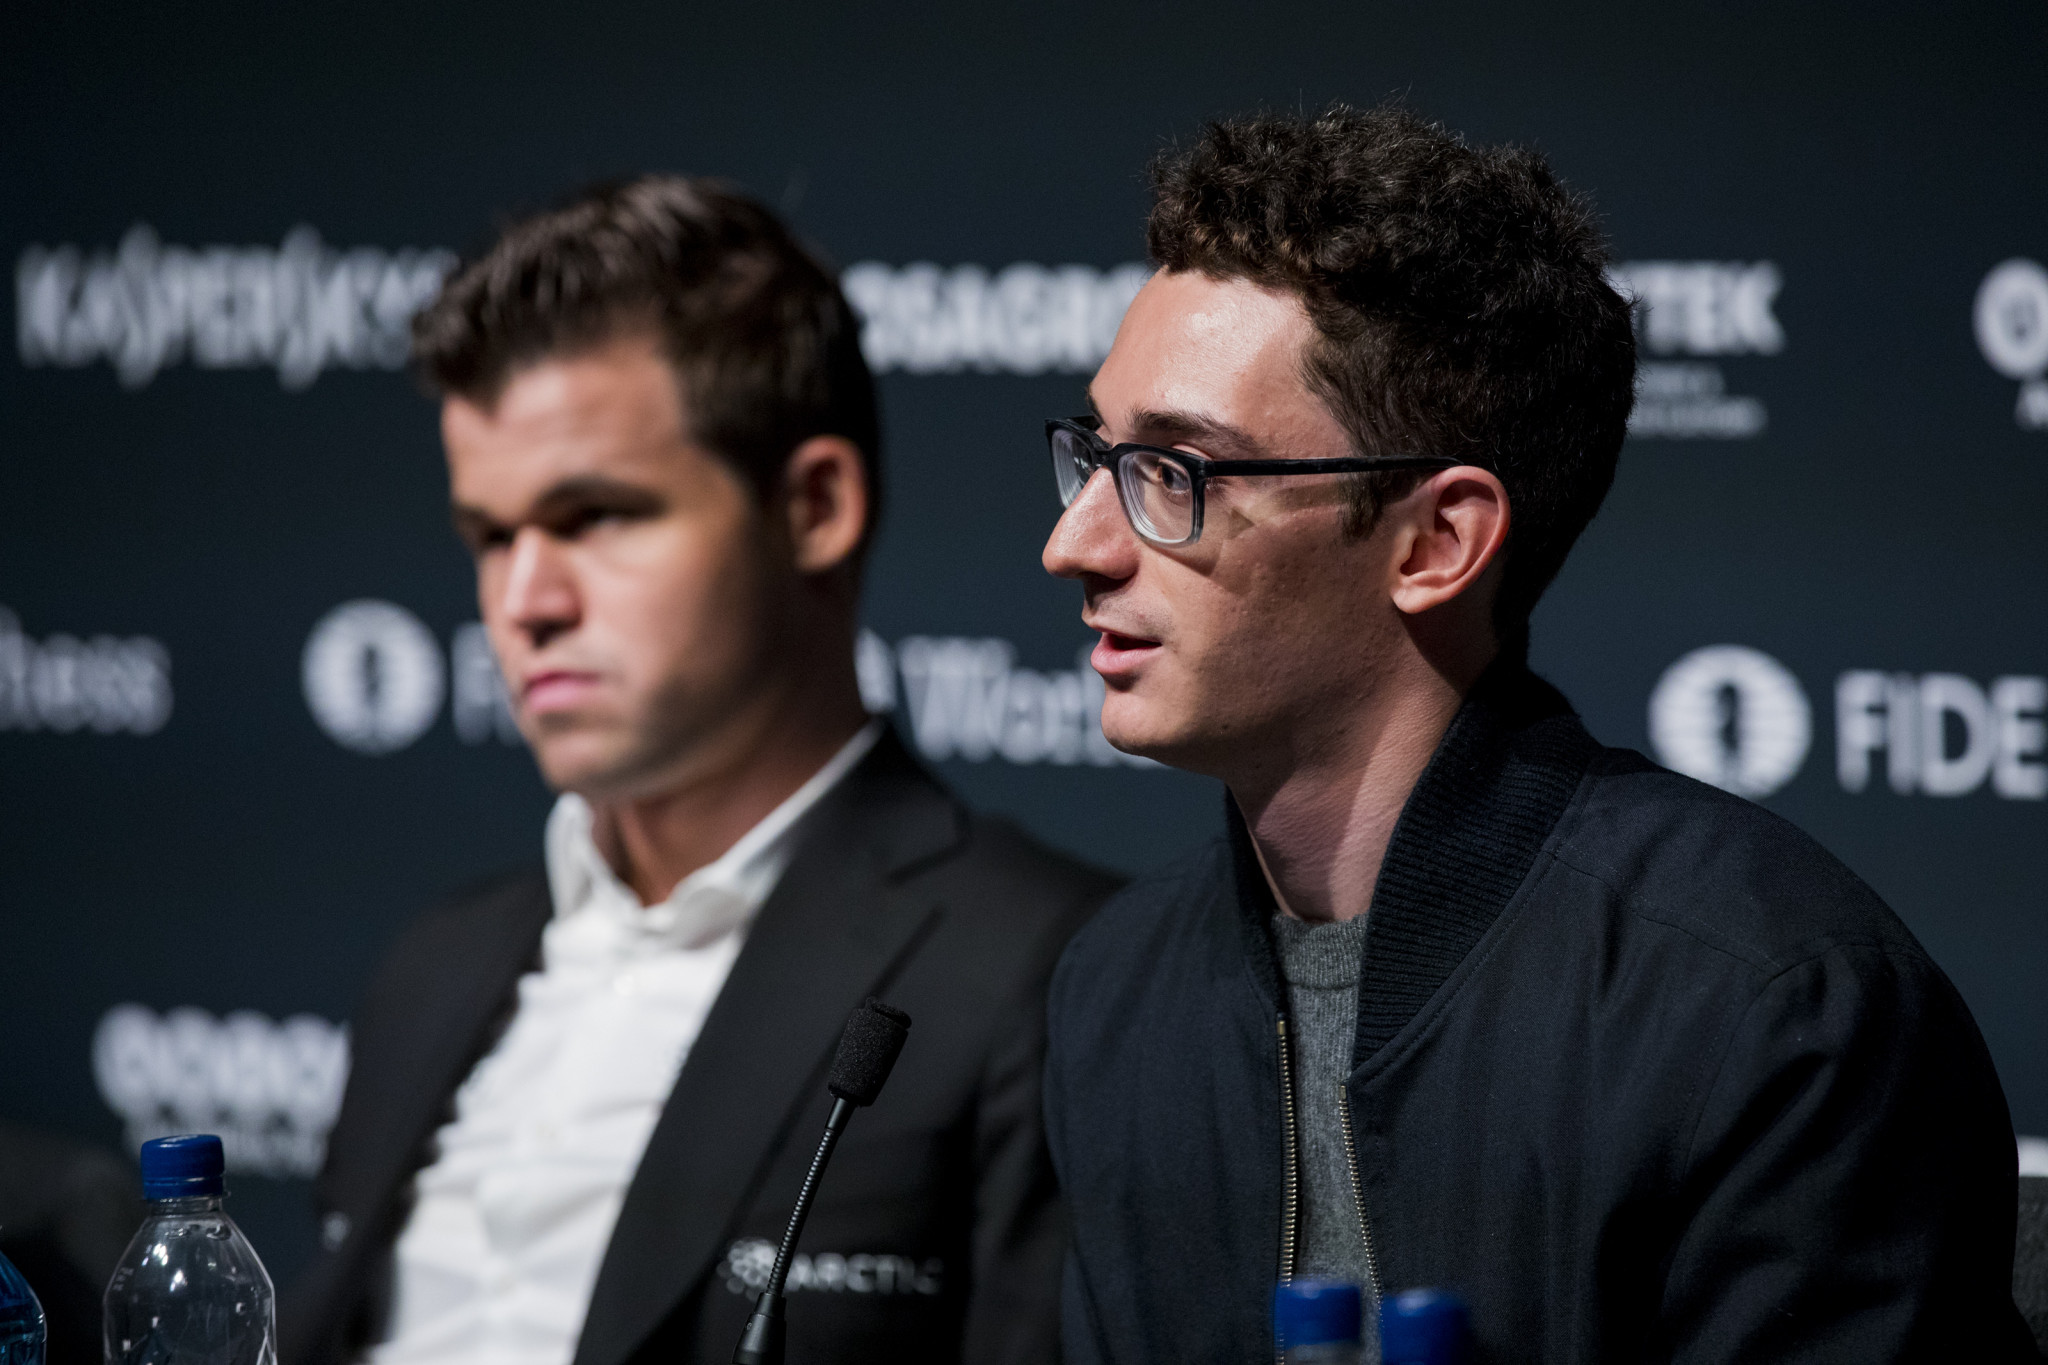 Carlsen set to defend world chess title against Caruana as women's champion Ju's title defence proceeds smoothly